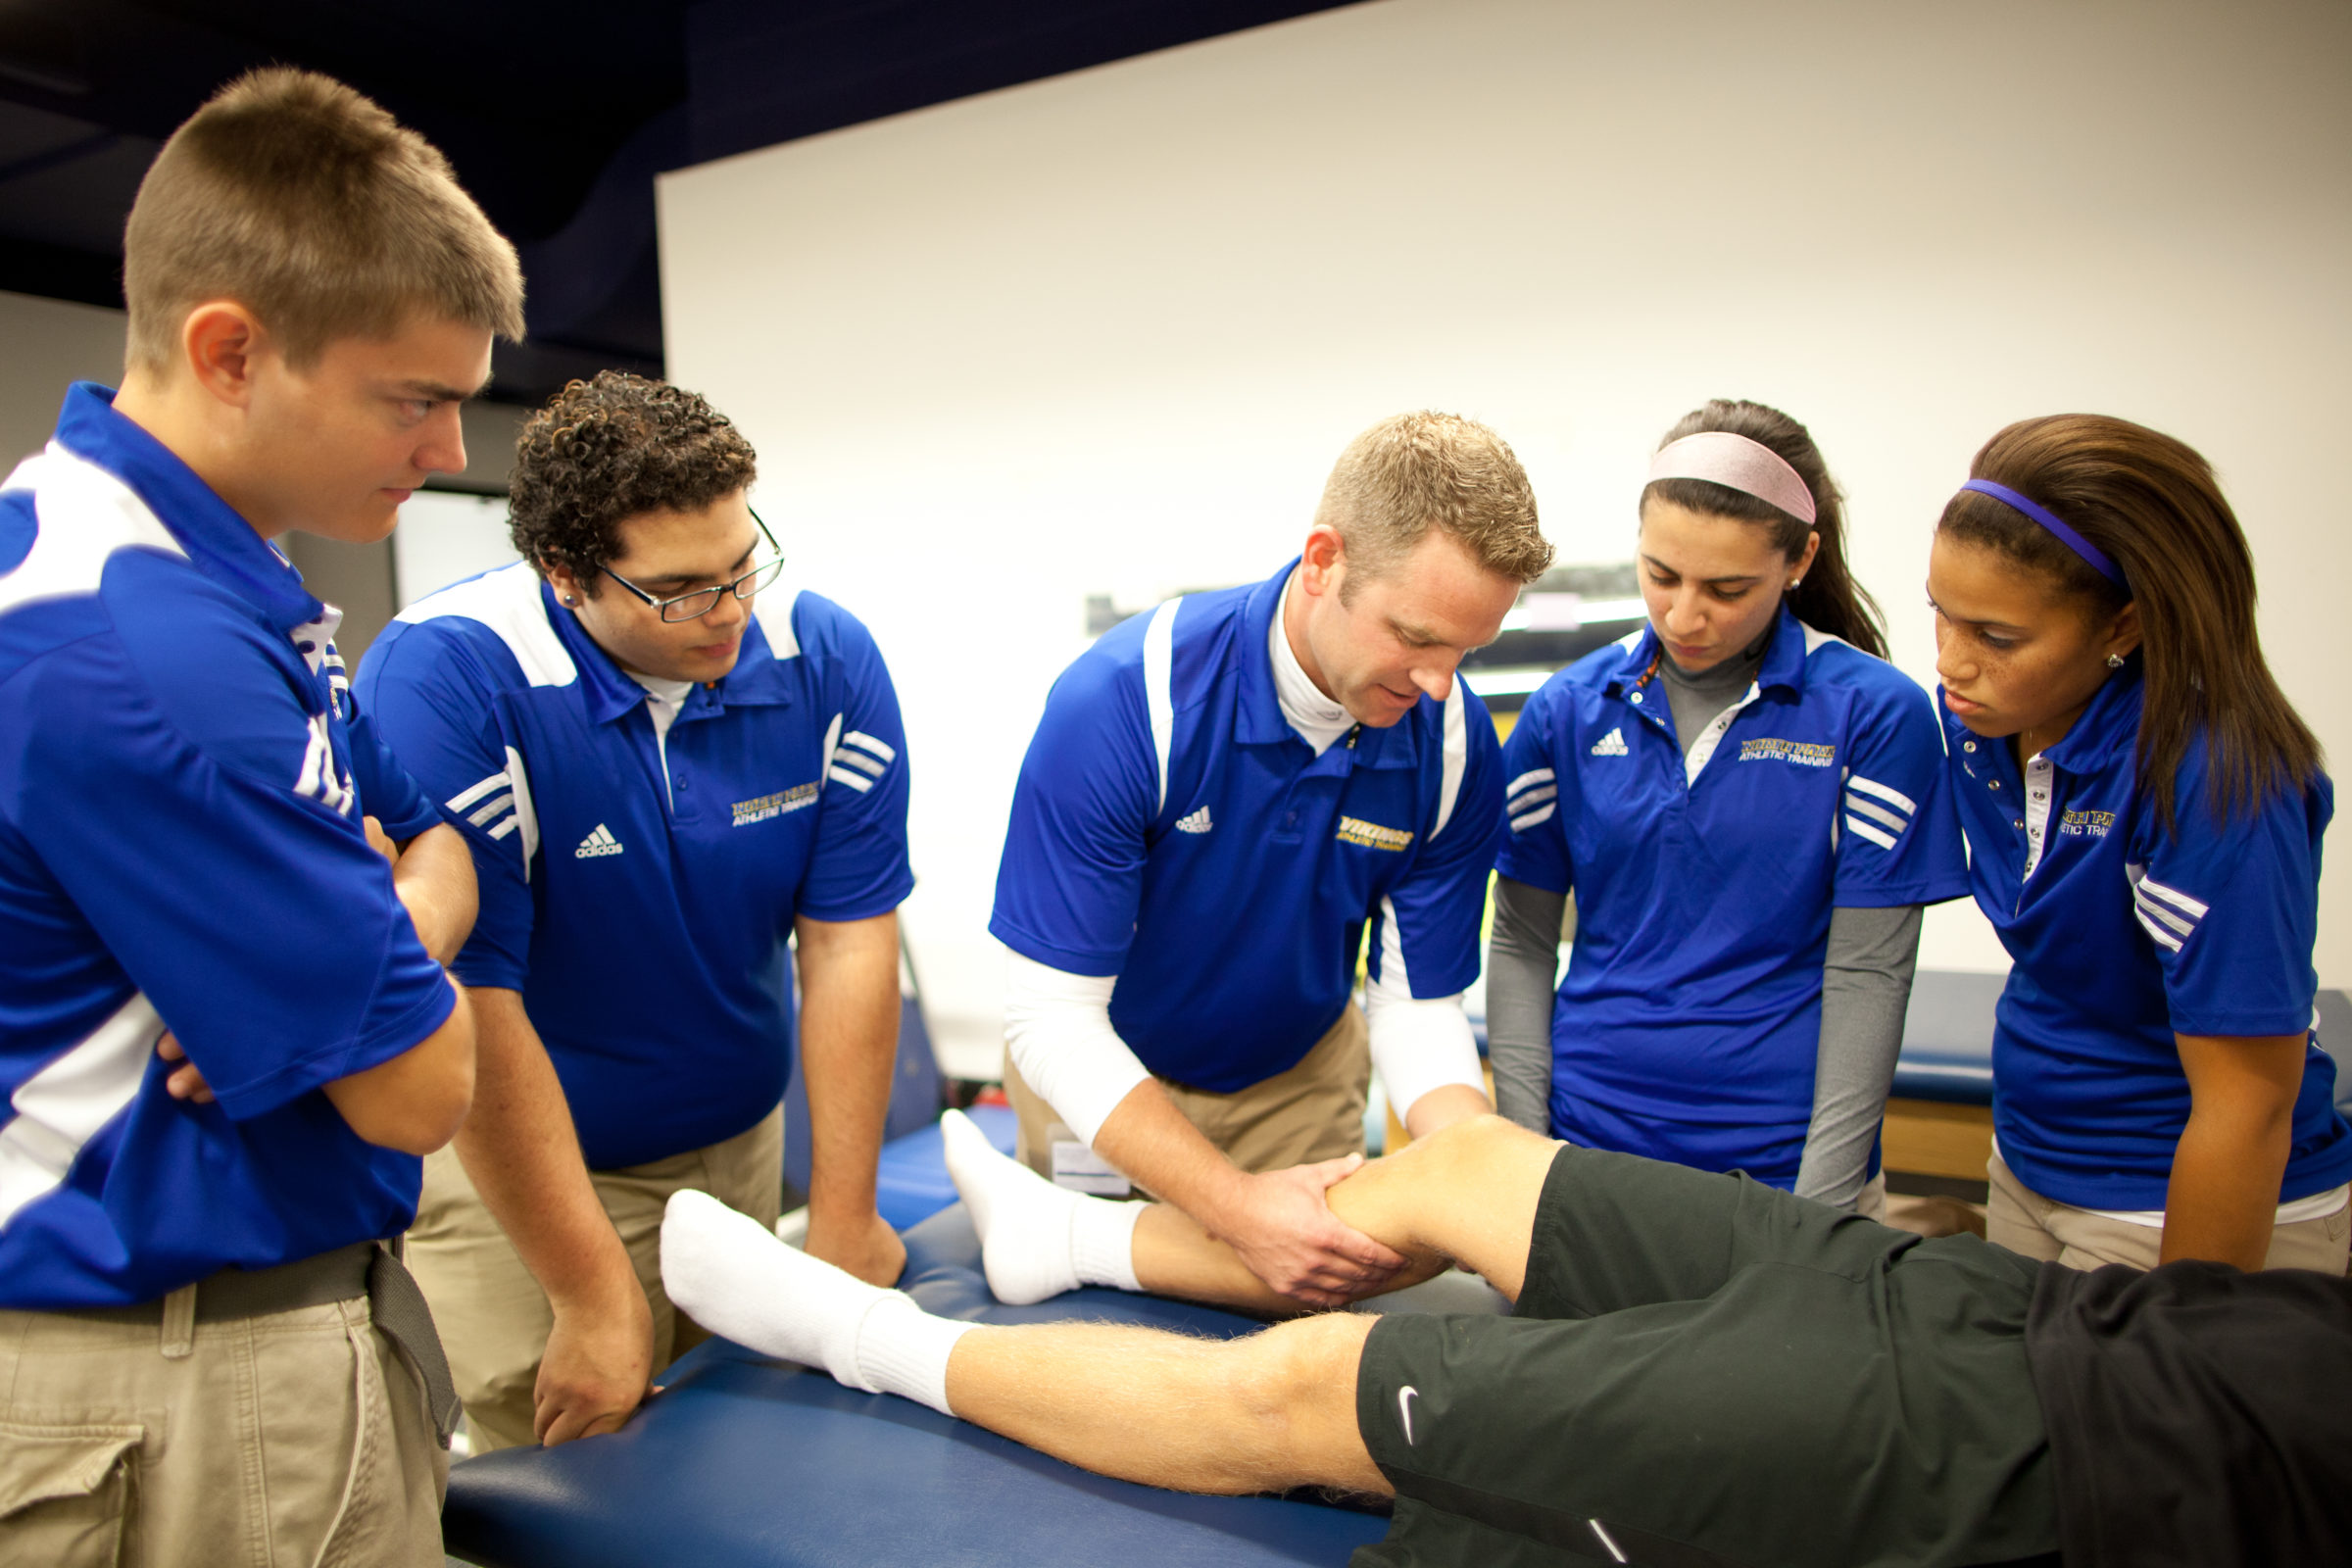 Athletic Training: 3+2 Program Now Available featured image background